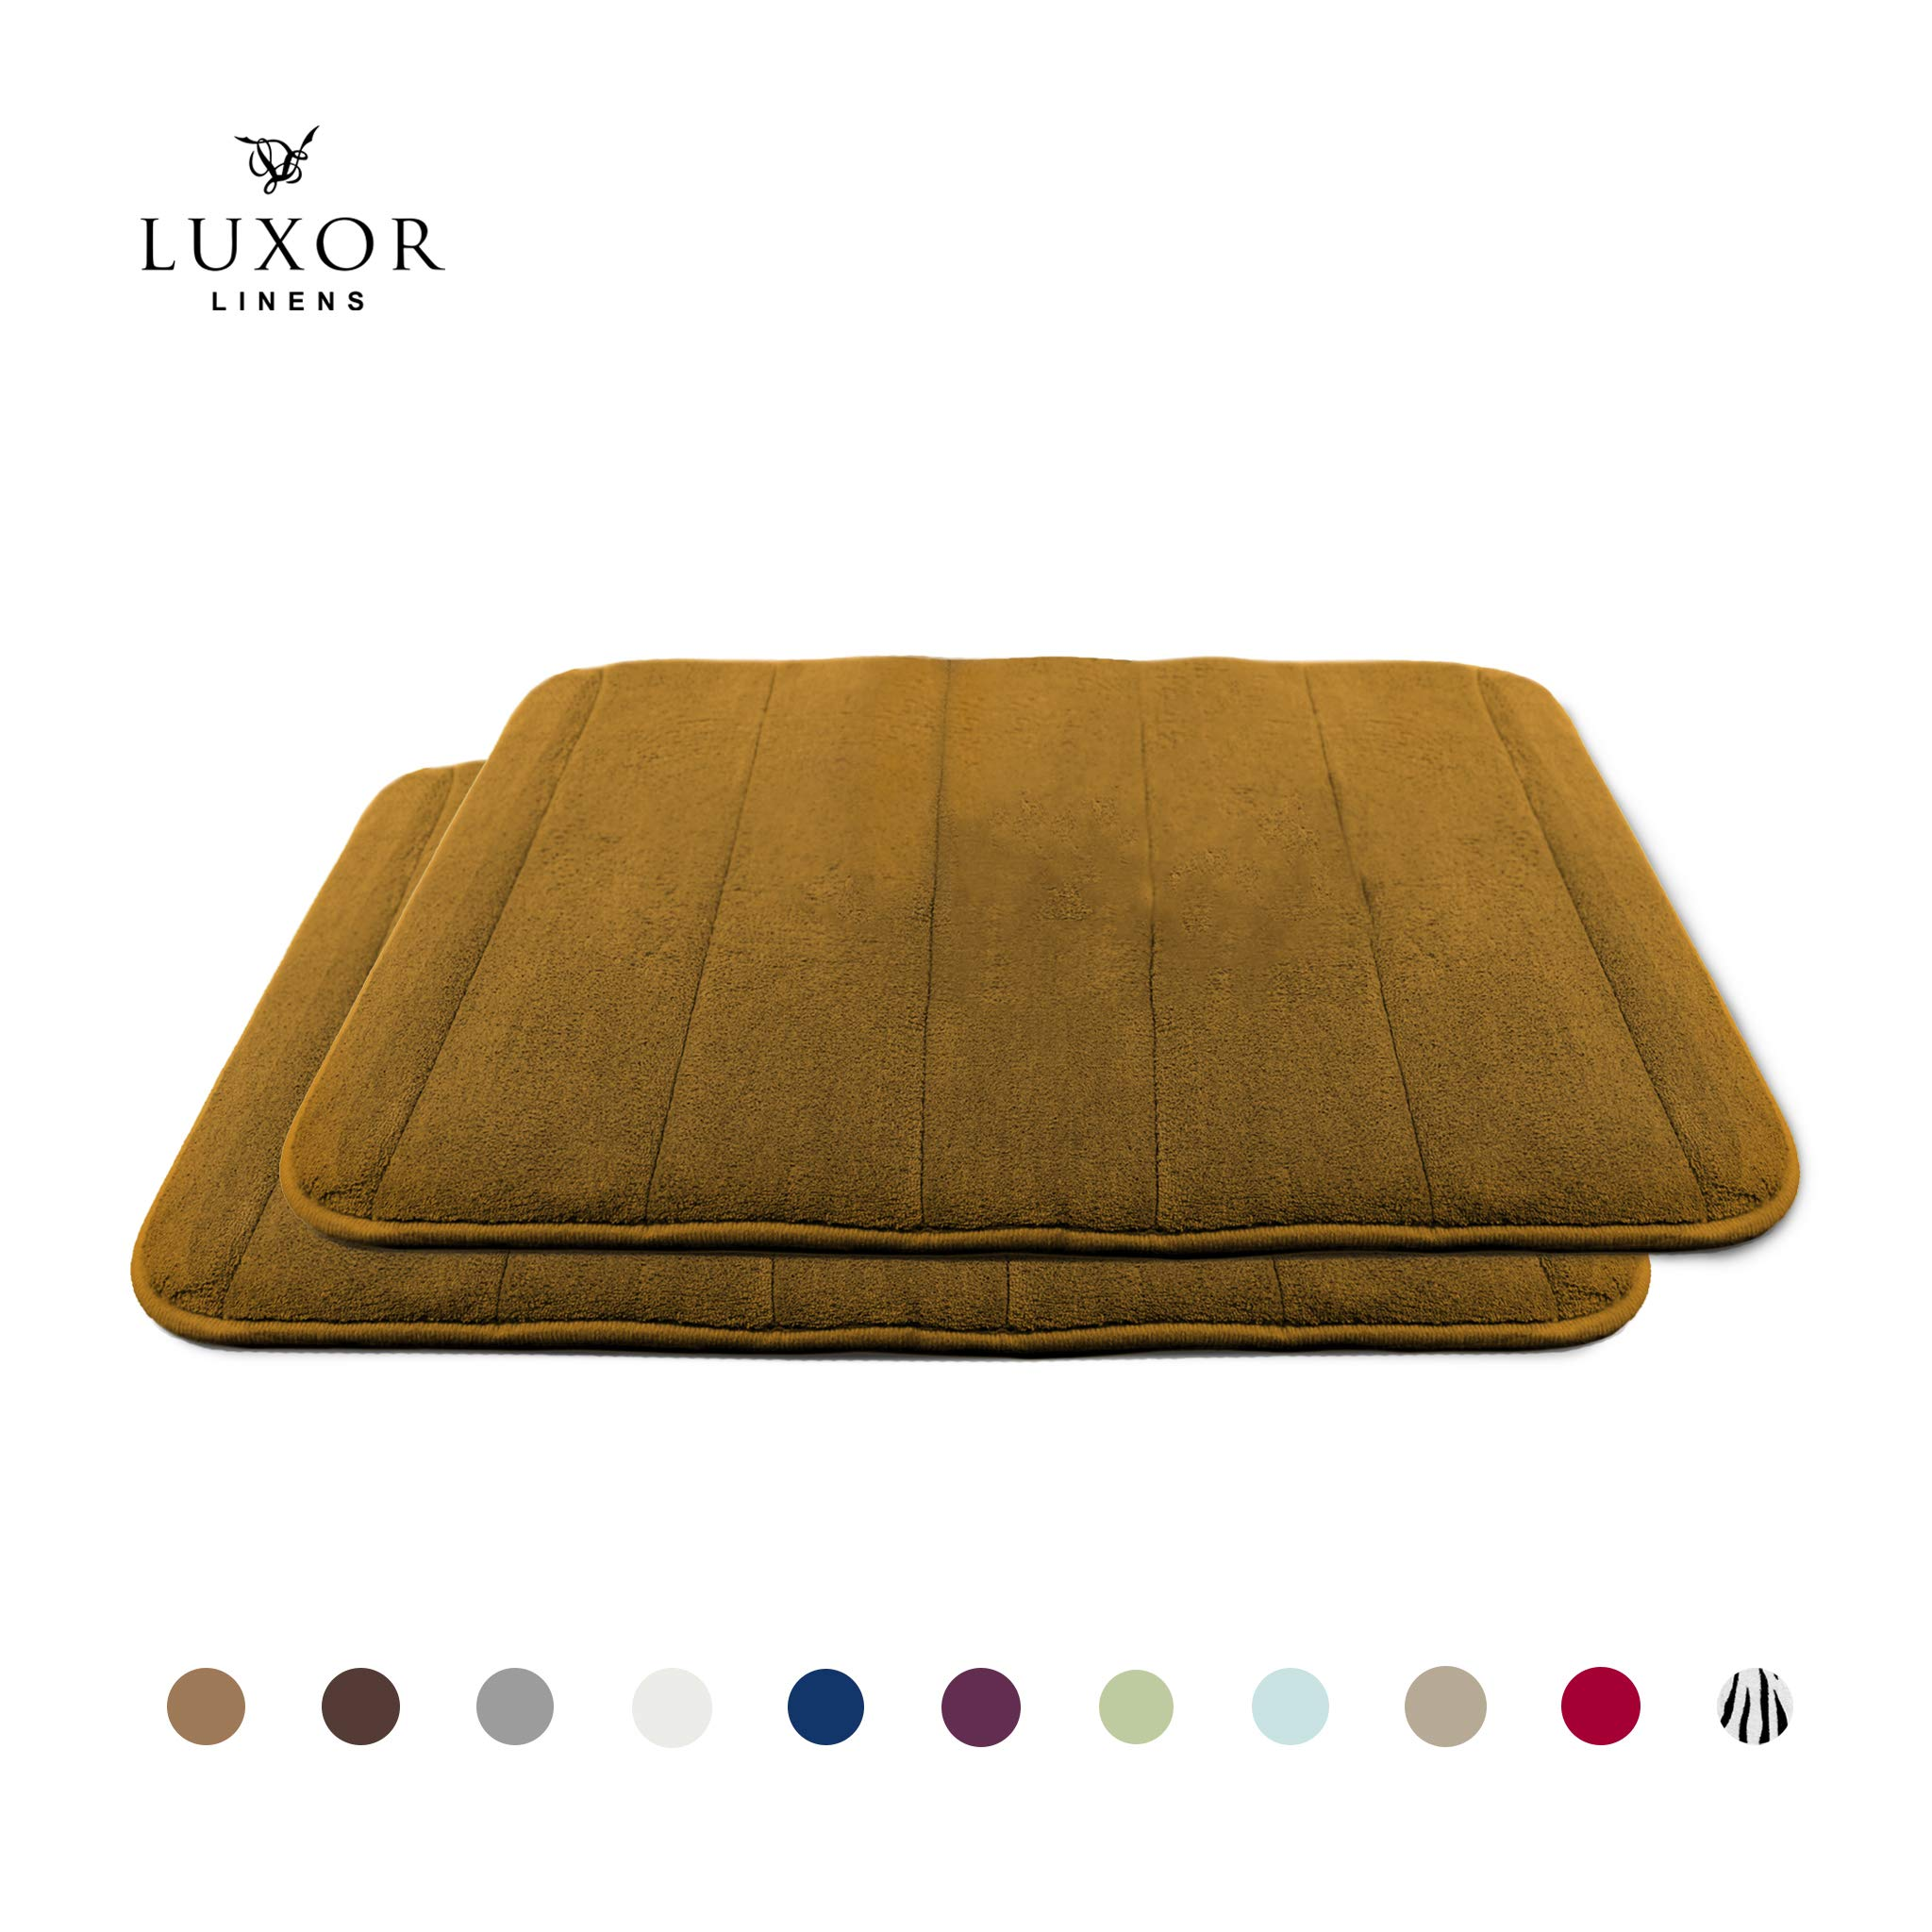 Luxor Linens - Memory Foam Bath Mat (17 x 25 inch) - Giovanni Line - Luxurious, Super Soft & Absorbent with Anti-Slip Backing - Available in a Wide Variety of Colors (2-Piece Set, Caramel)